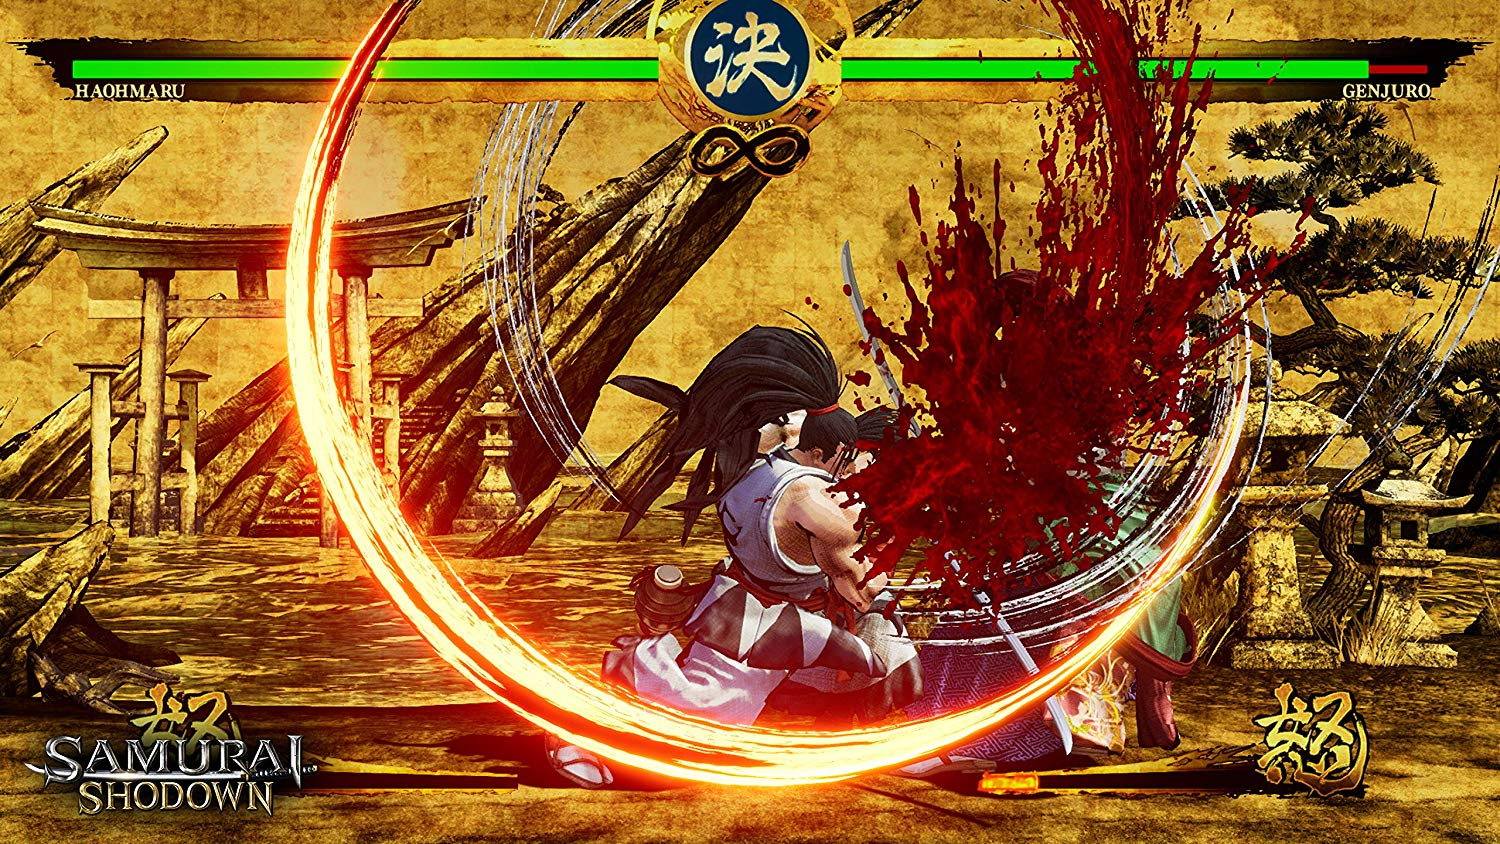 'Samurai Shodown' Could Be the Breakout Game at Evo. Here's Why. - VICE